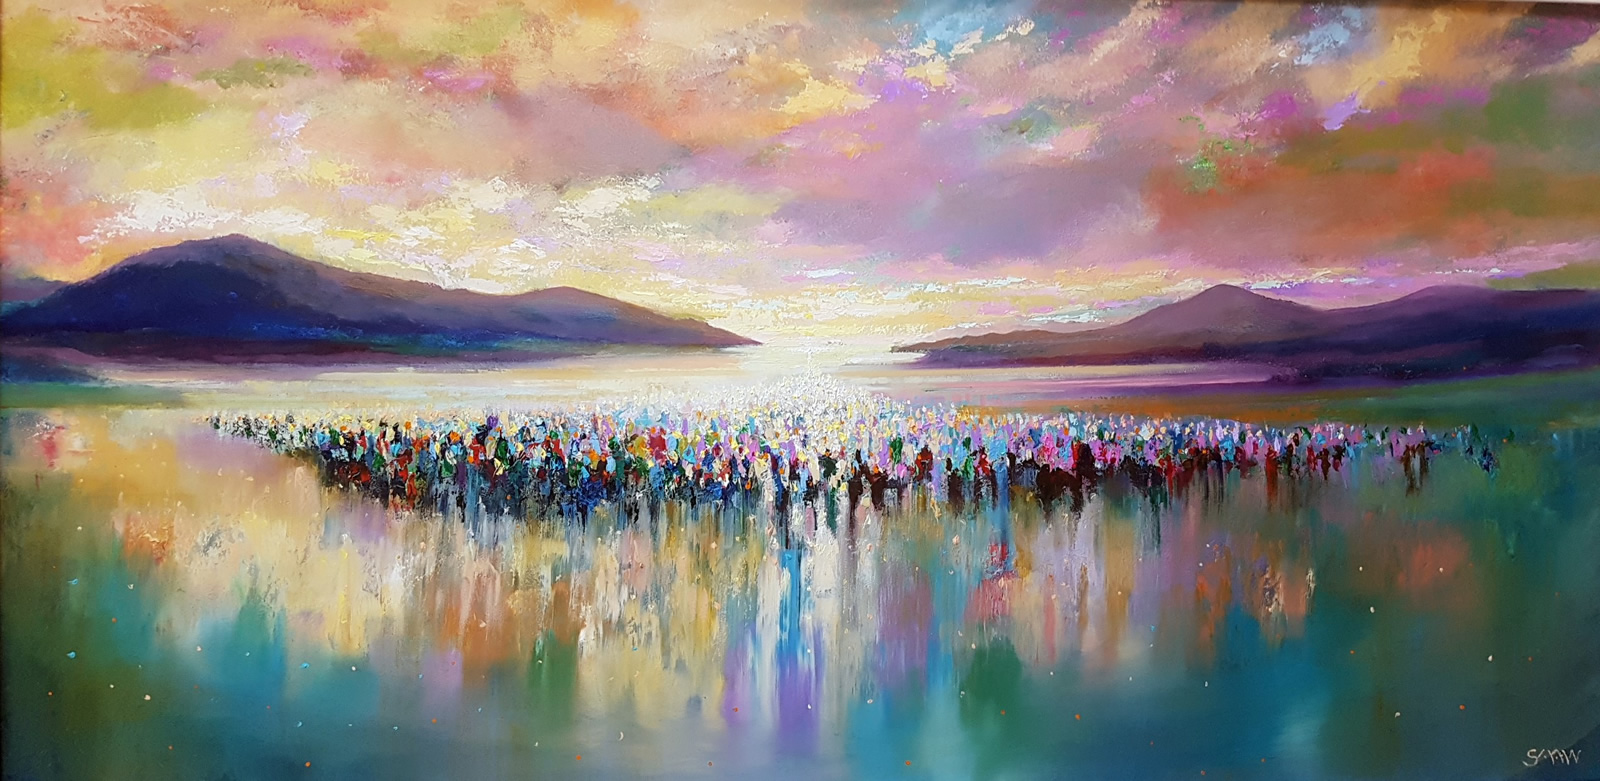 Gathering at the Shannon - Robert Shaw